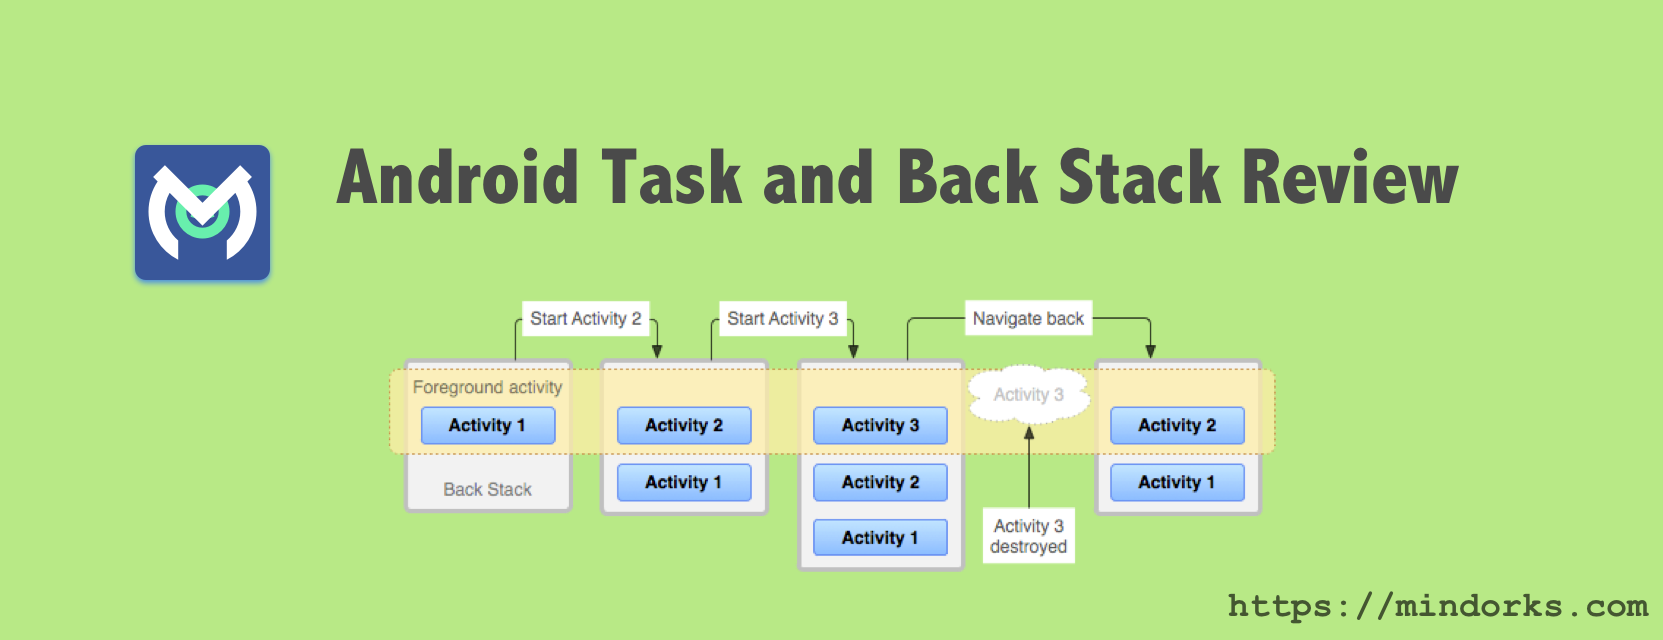 Debug your app | Android Developersbug your app | Android Developersdroid Task and Back Stack